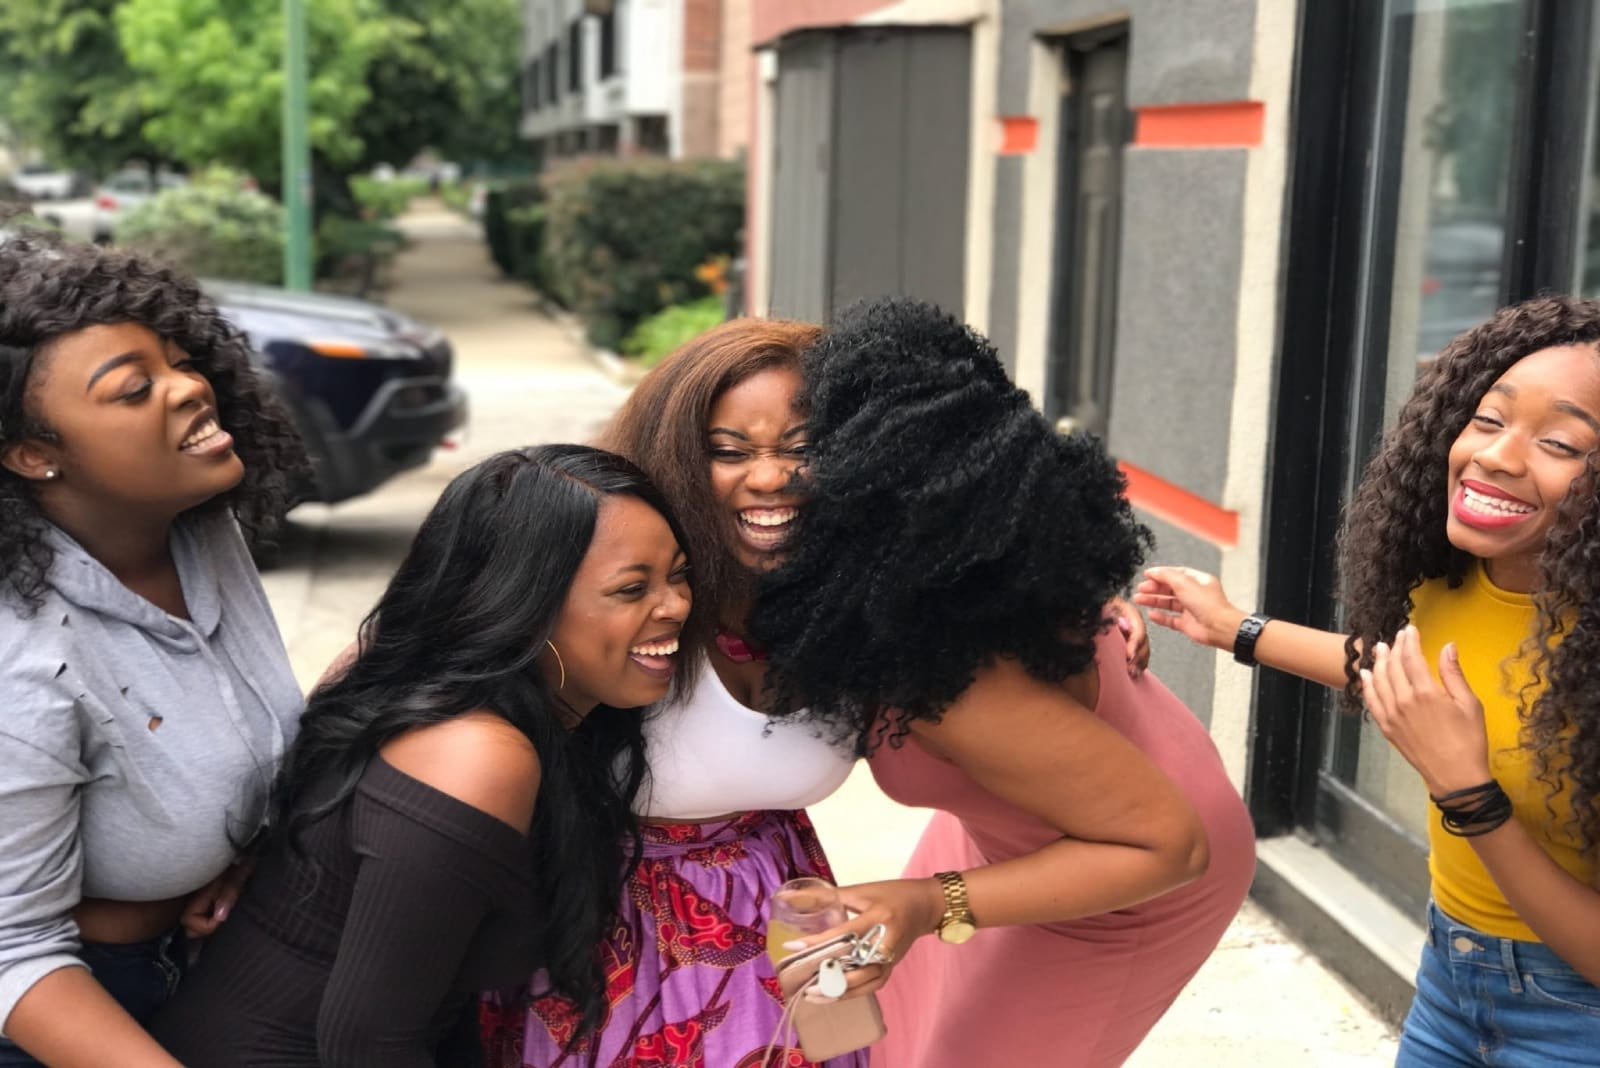 five women laughing while standing outdoor